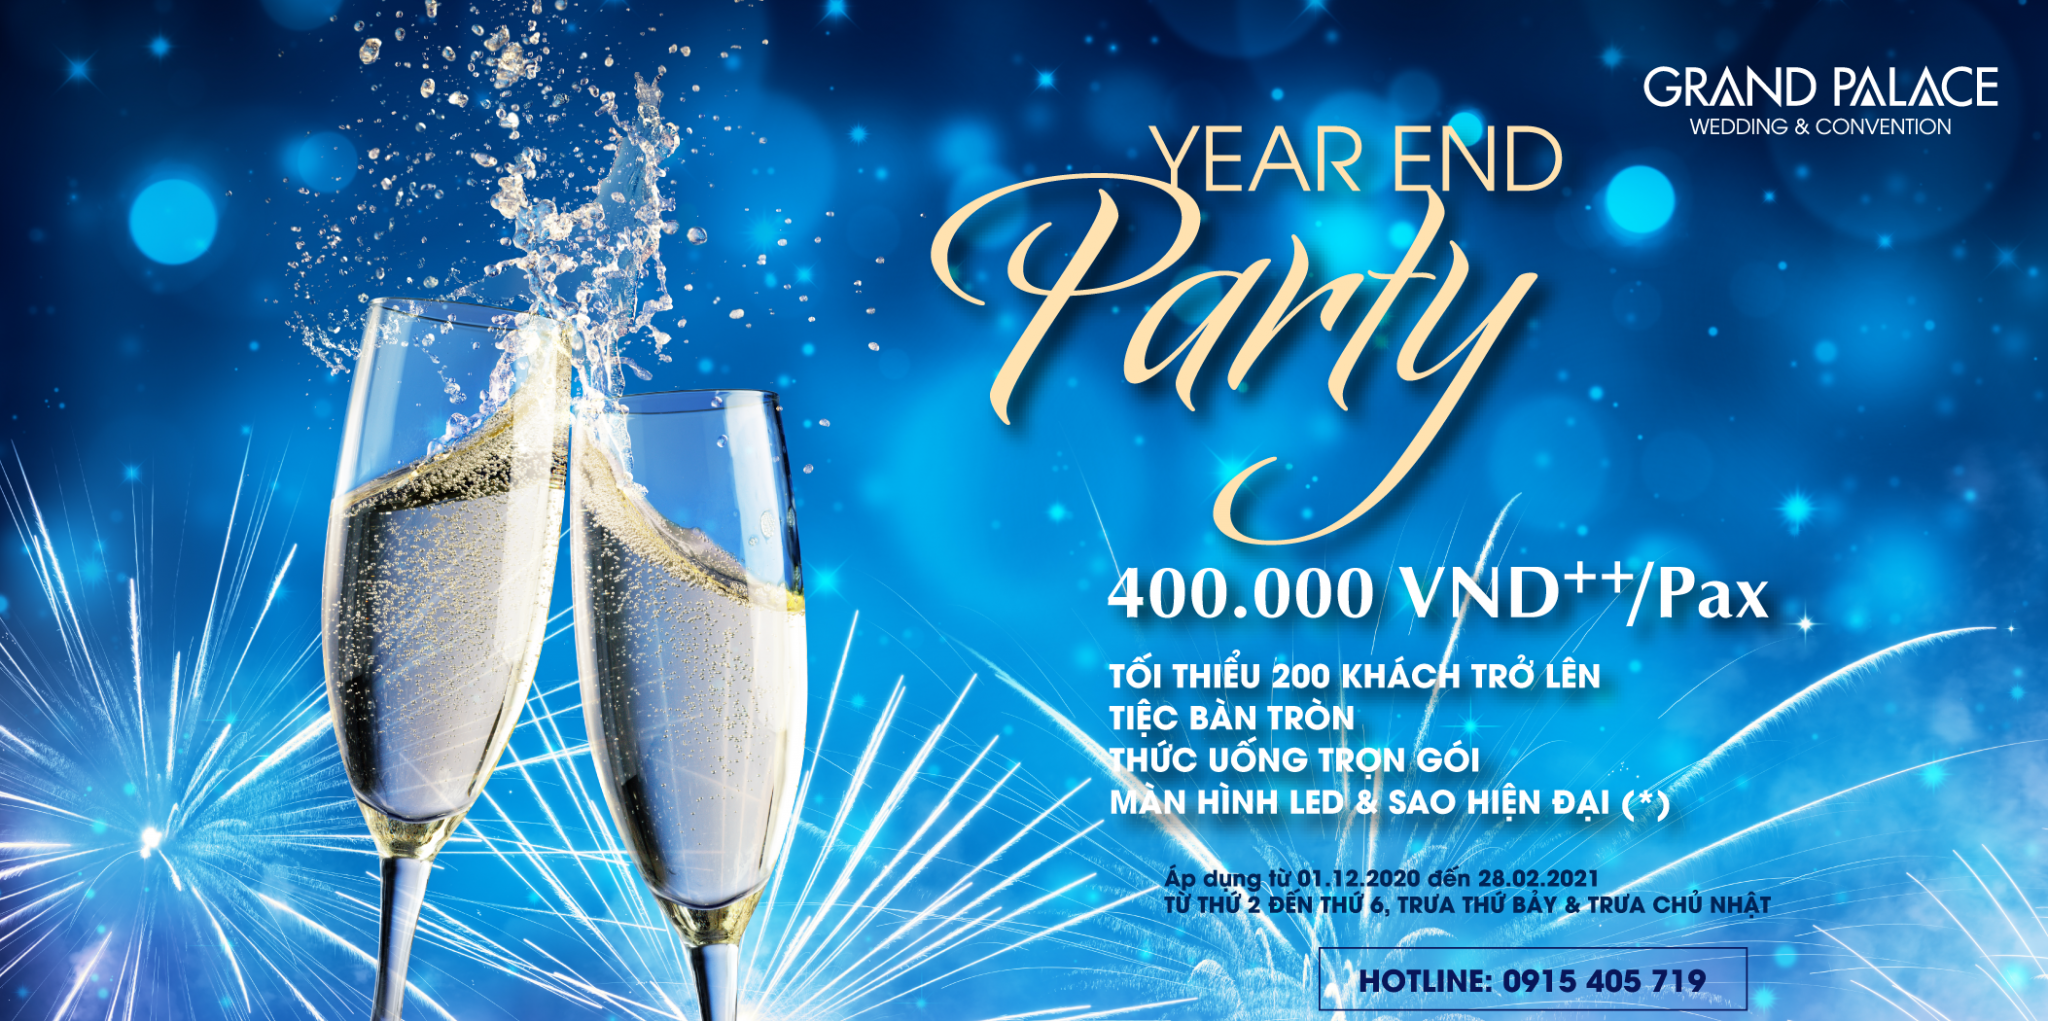 YEAR END PARTY - CHỈ TỪ 400.000VND++/PAX